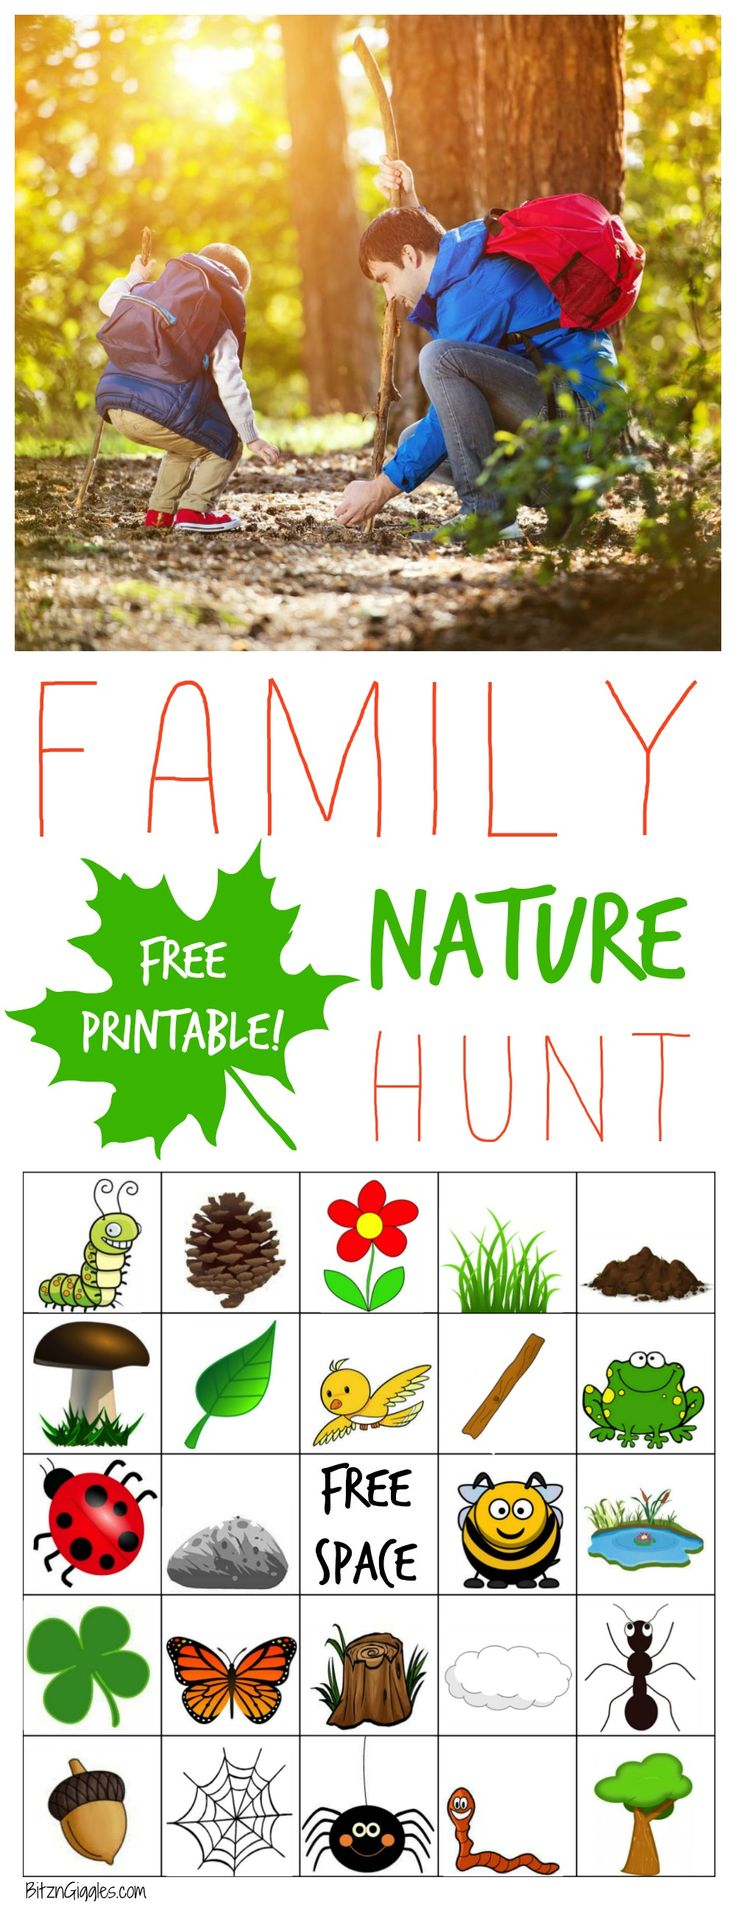 Family Nature Hunt - Melissa & Doug Blog